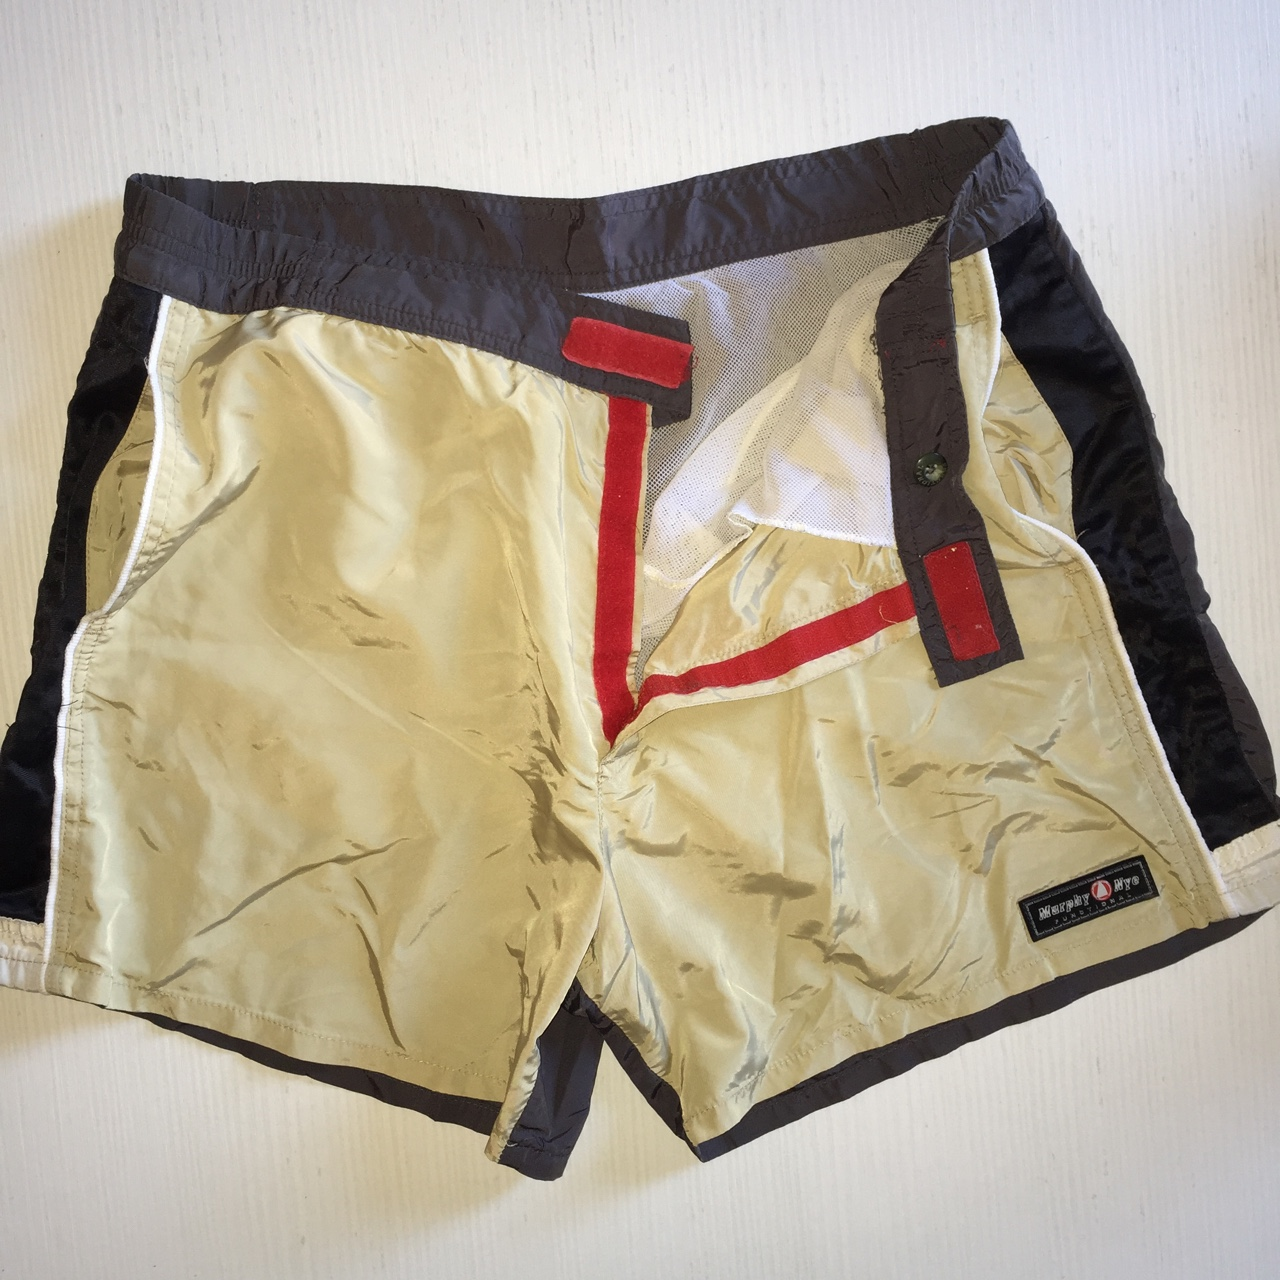 reputable site d591b c60d1 Murphy and Nye 'functional' costume uomo boxer... - Depop